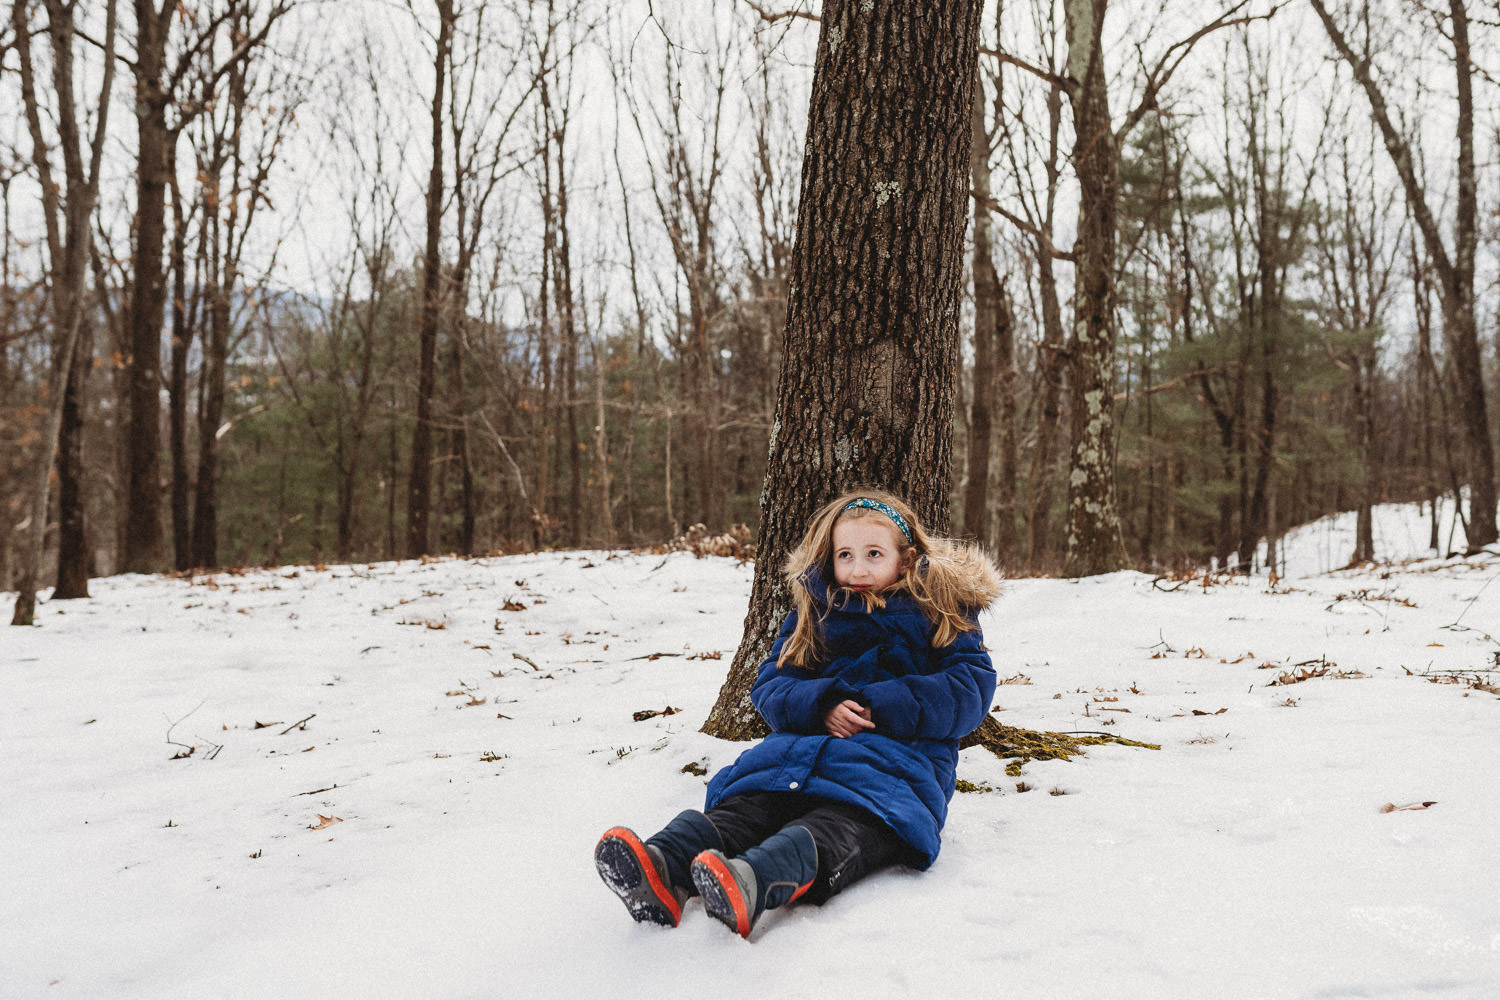 A little girl sits in the snow under a tree.